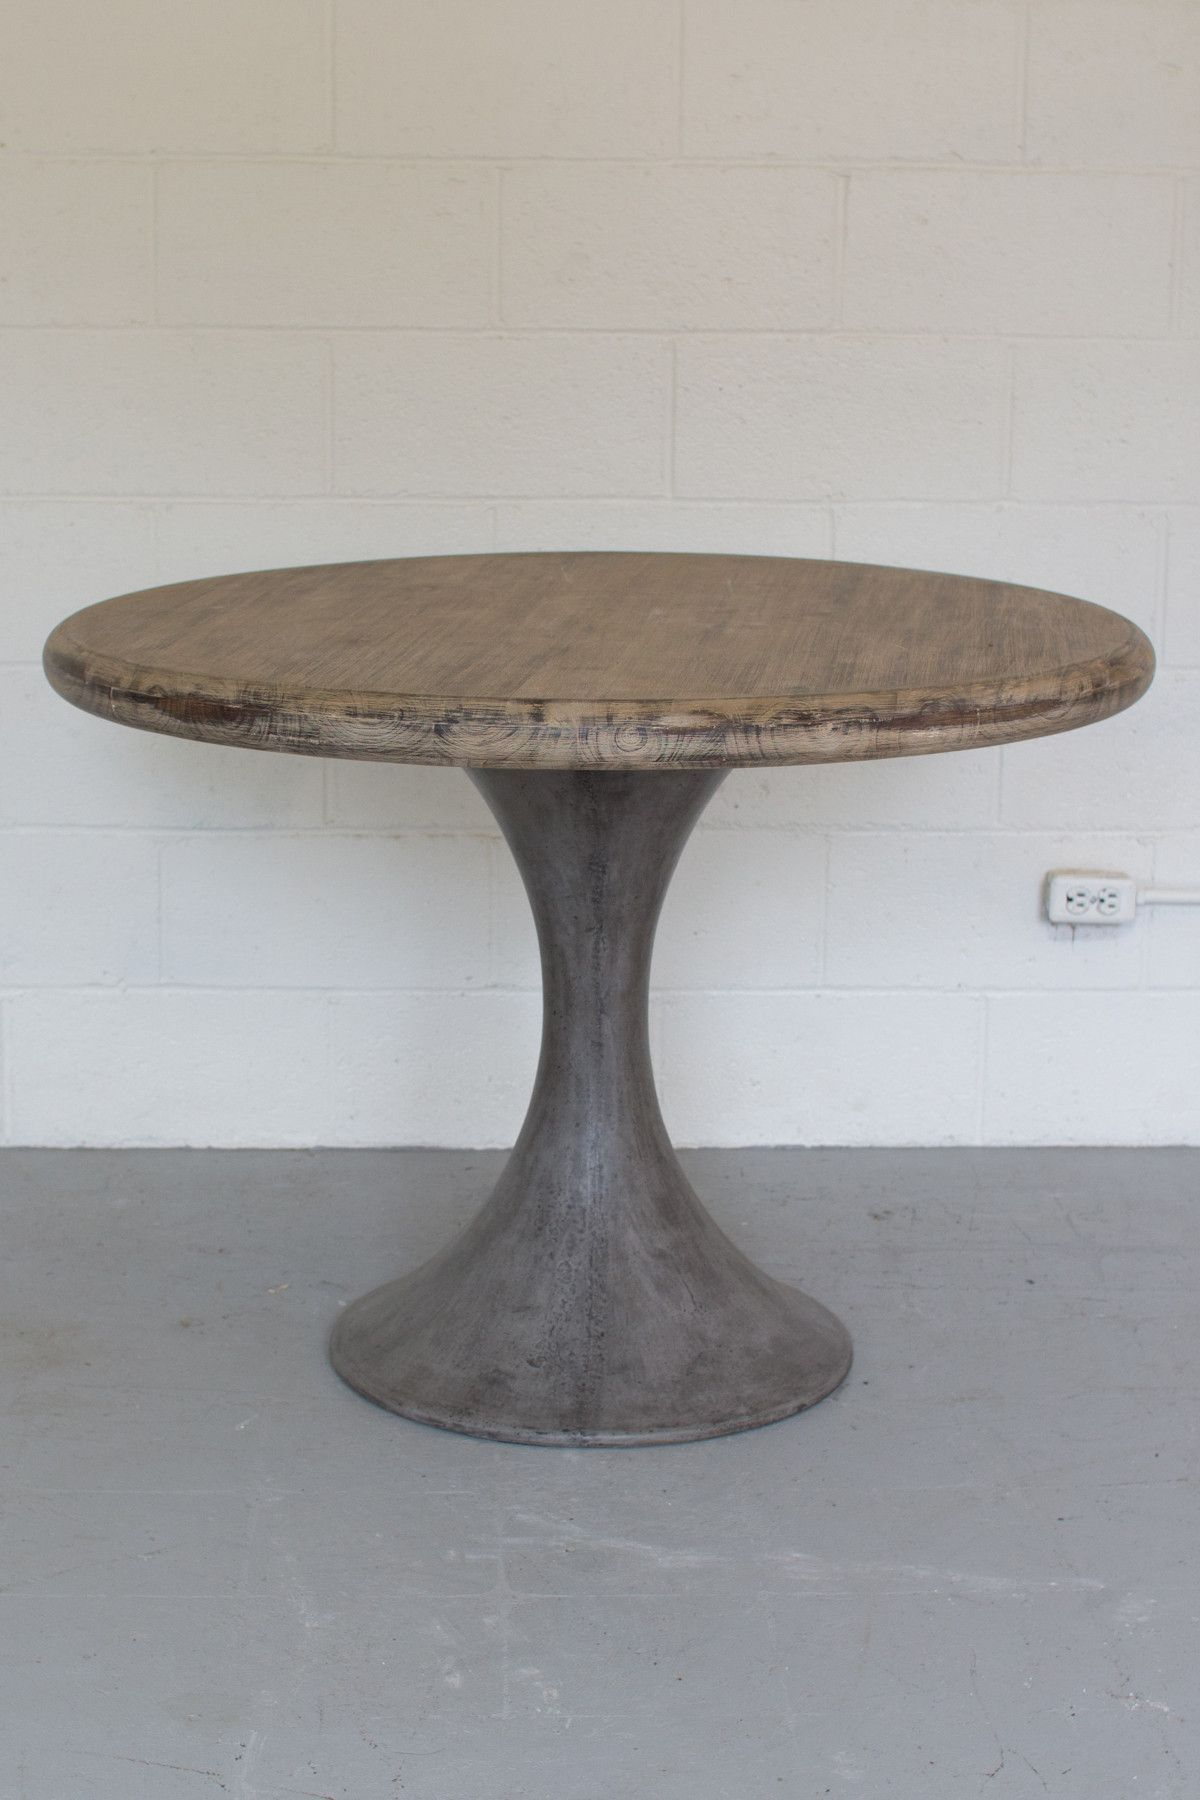 Pairing A Solid Concrete Pedestal Base And Round Acacia Wood Dining Top This